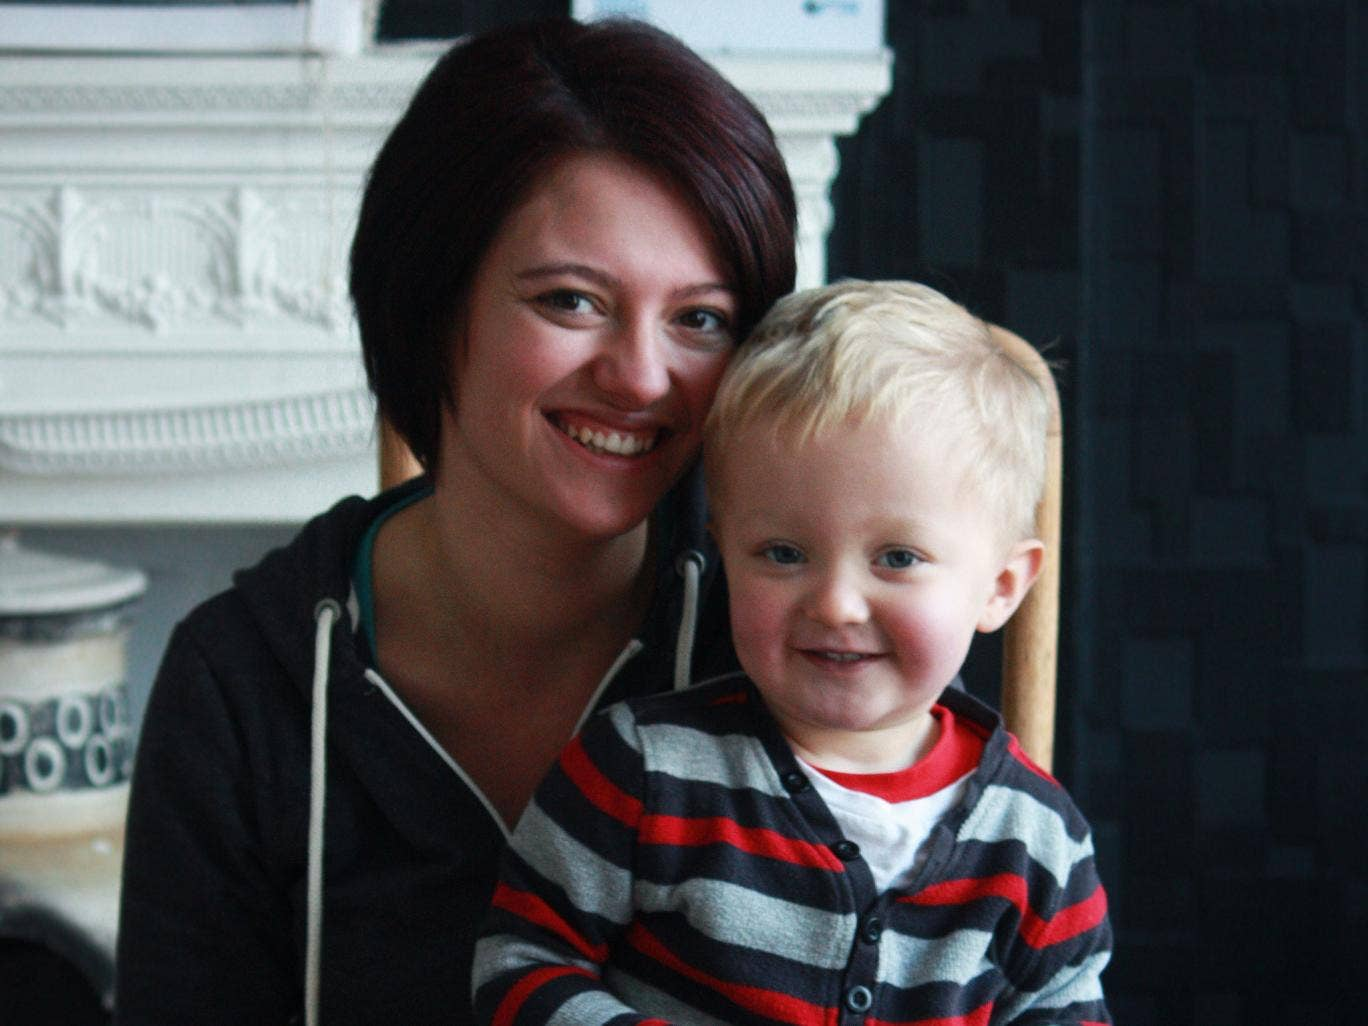 Jack Monroe has created recipes to feed herself and her son, Johnny, on £10 a week